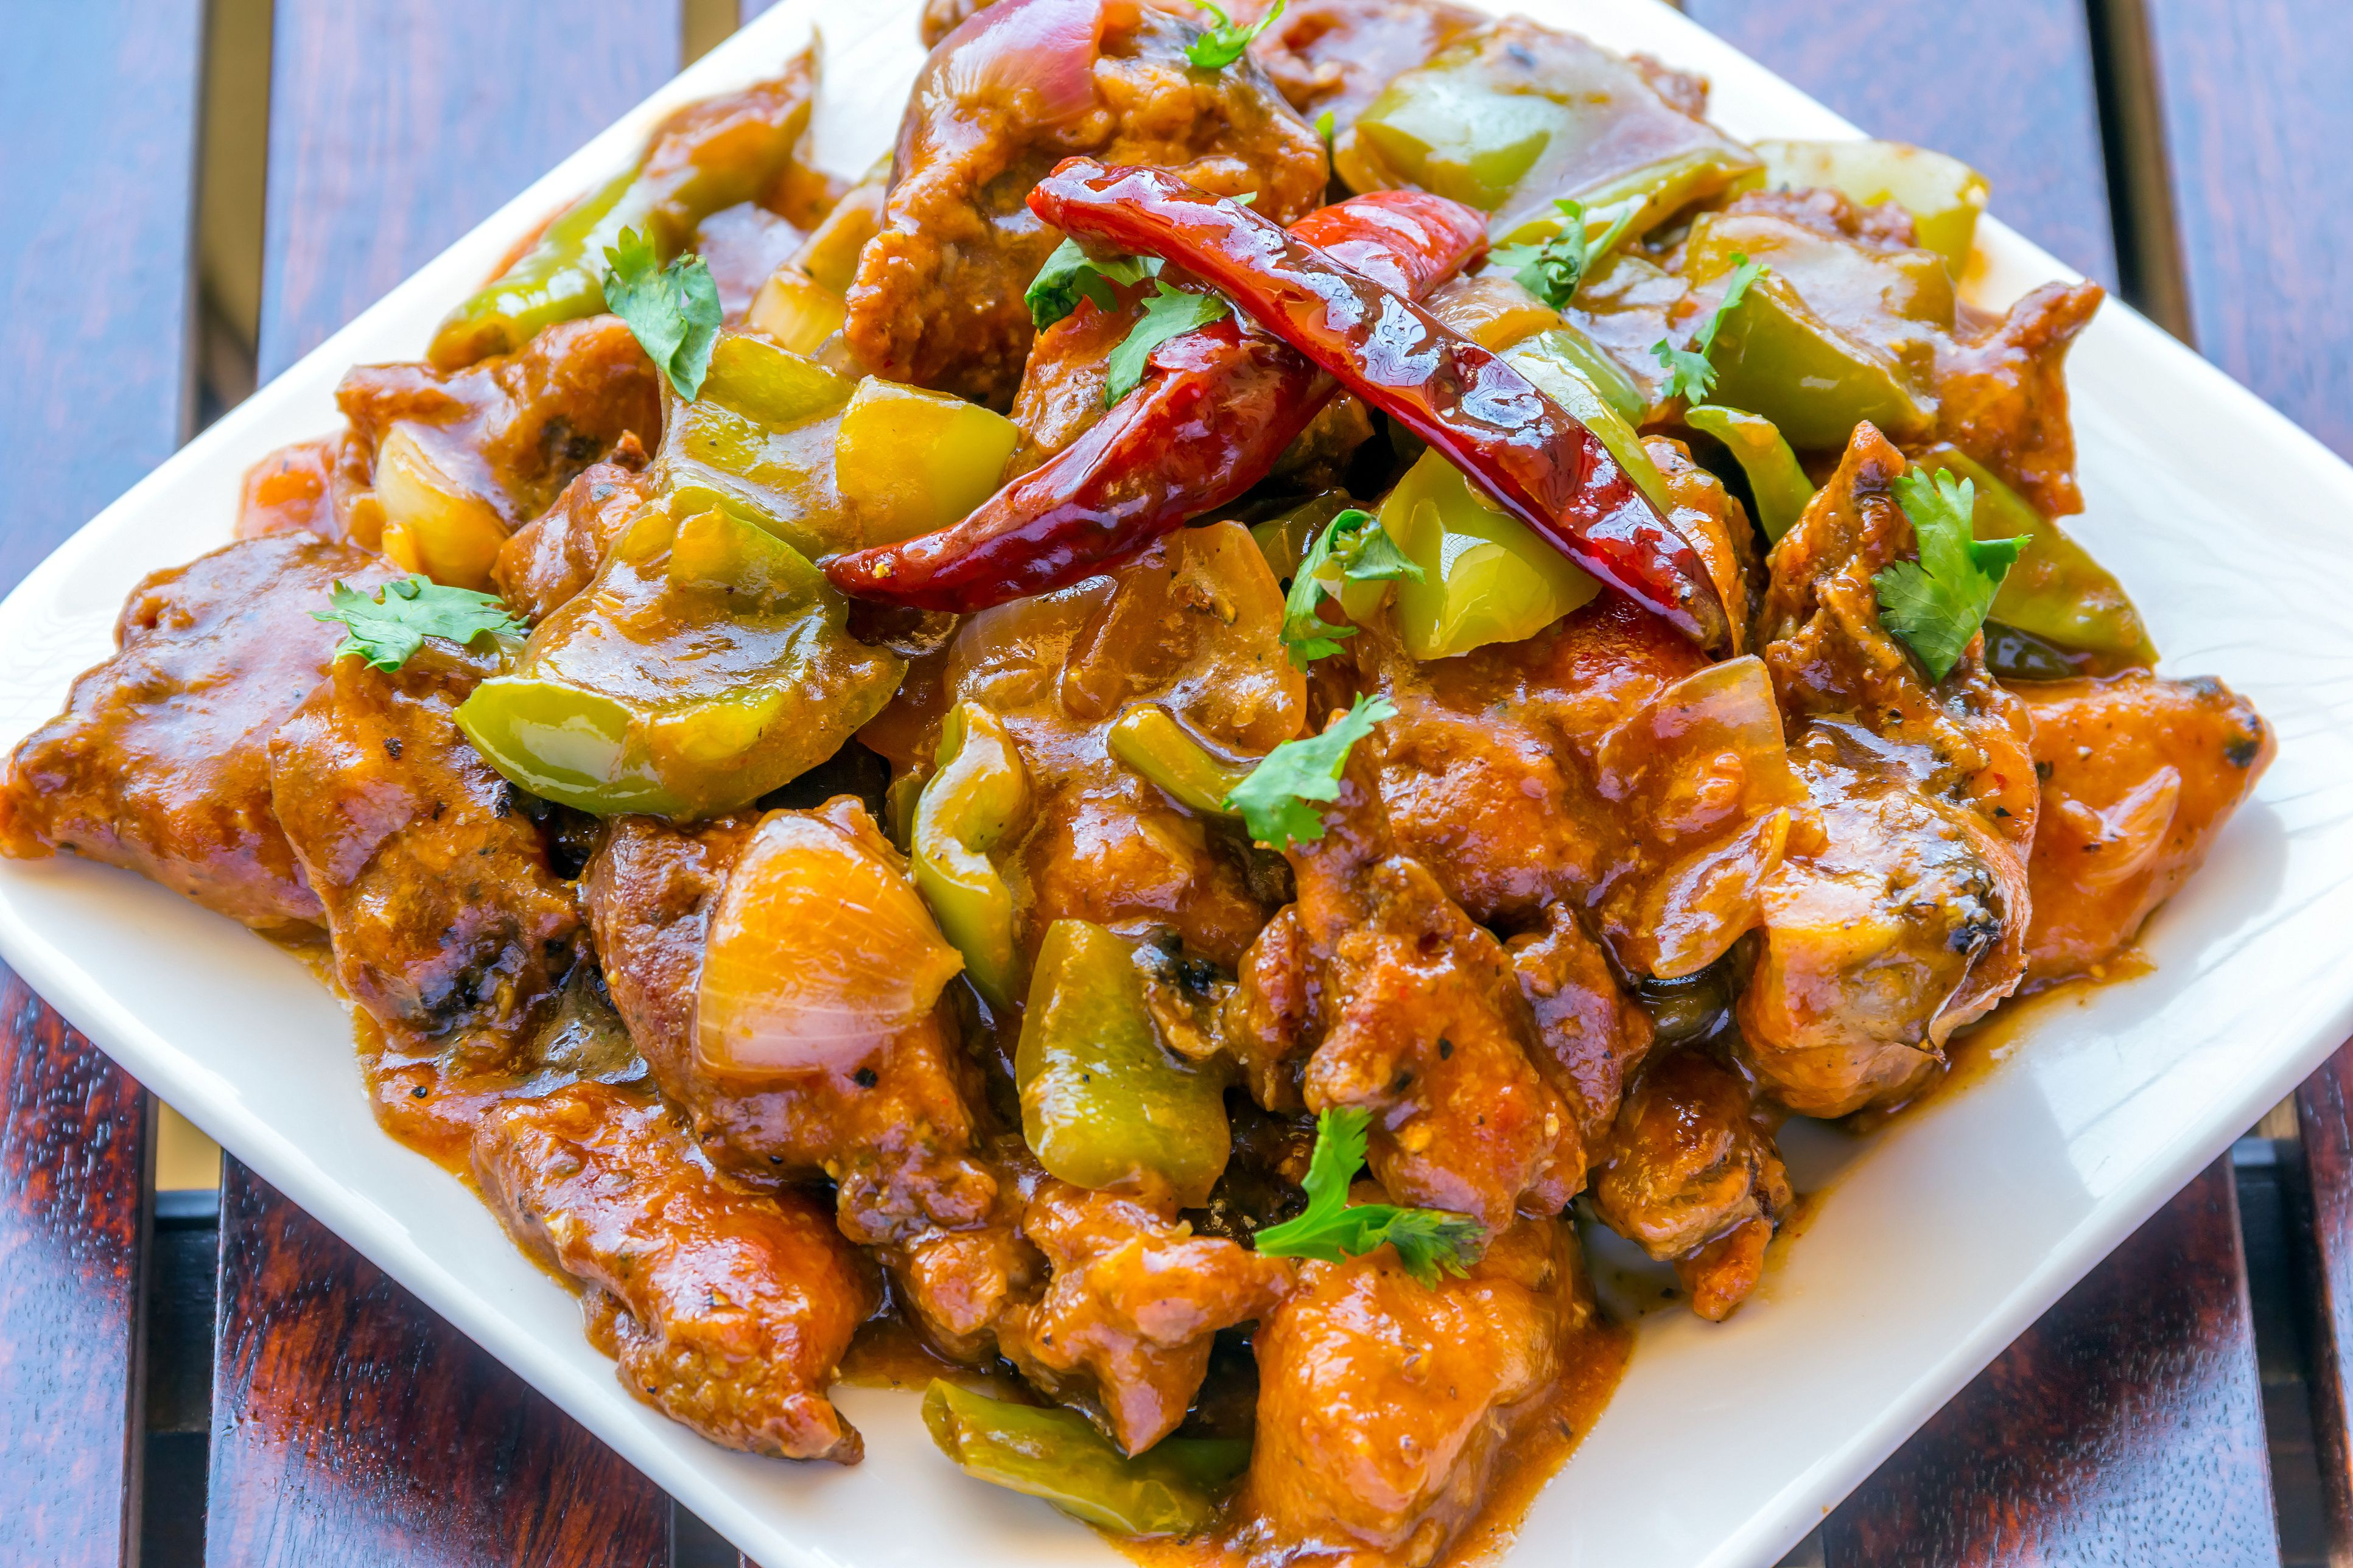 How to Make Indian-Style Chinese Chili Chicken